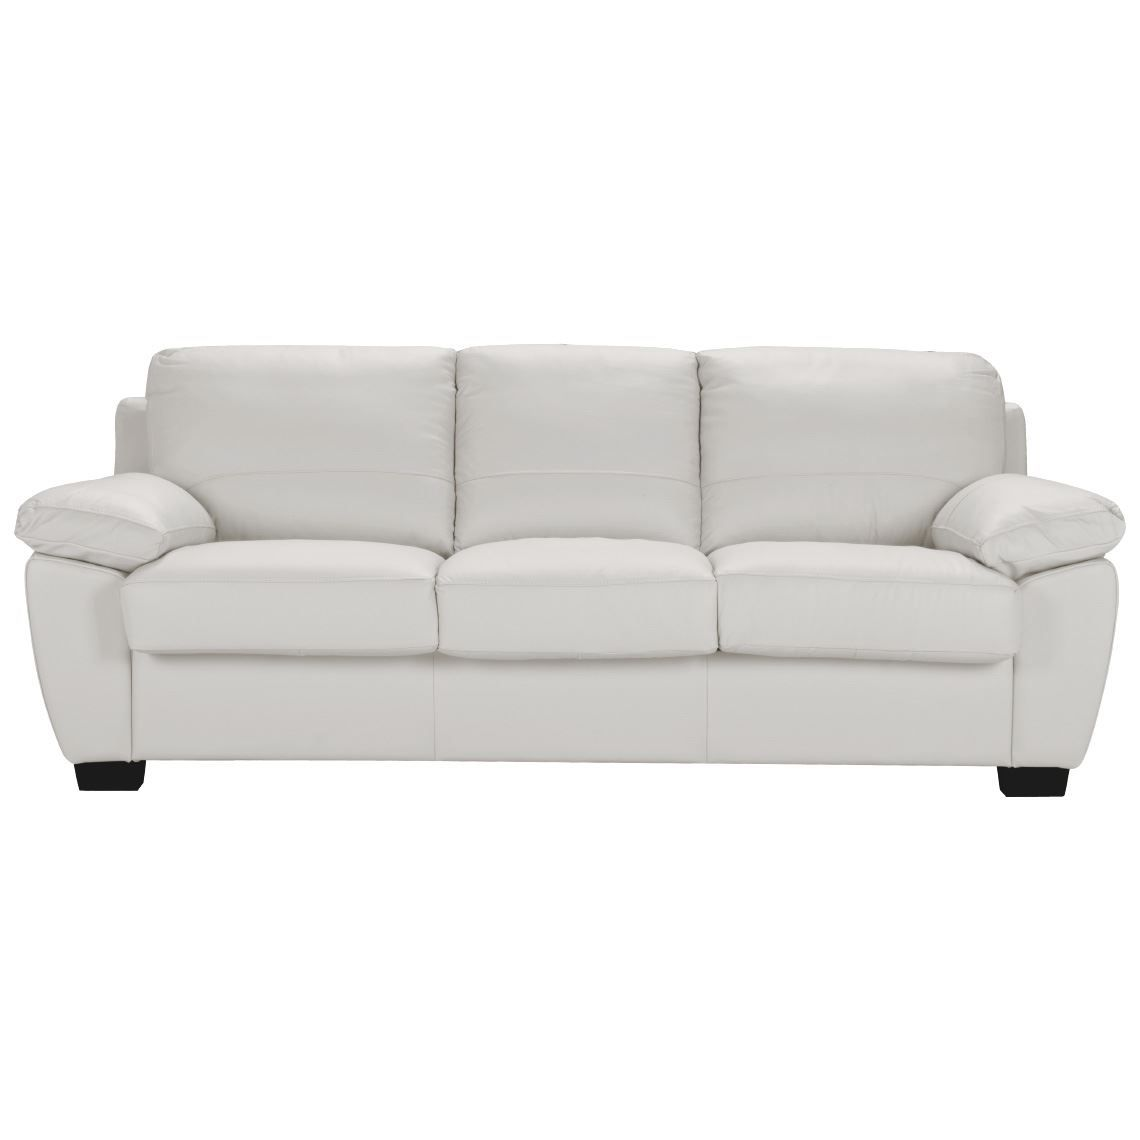 Lucas 3 Seat Leather Sofabed Sofa Bed Freedom Furniture Sofa